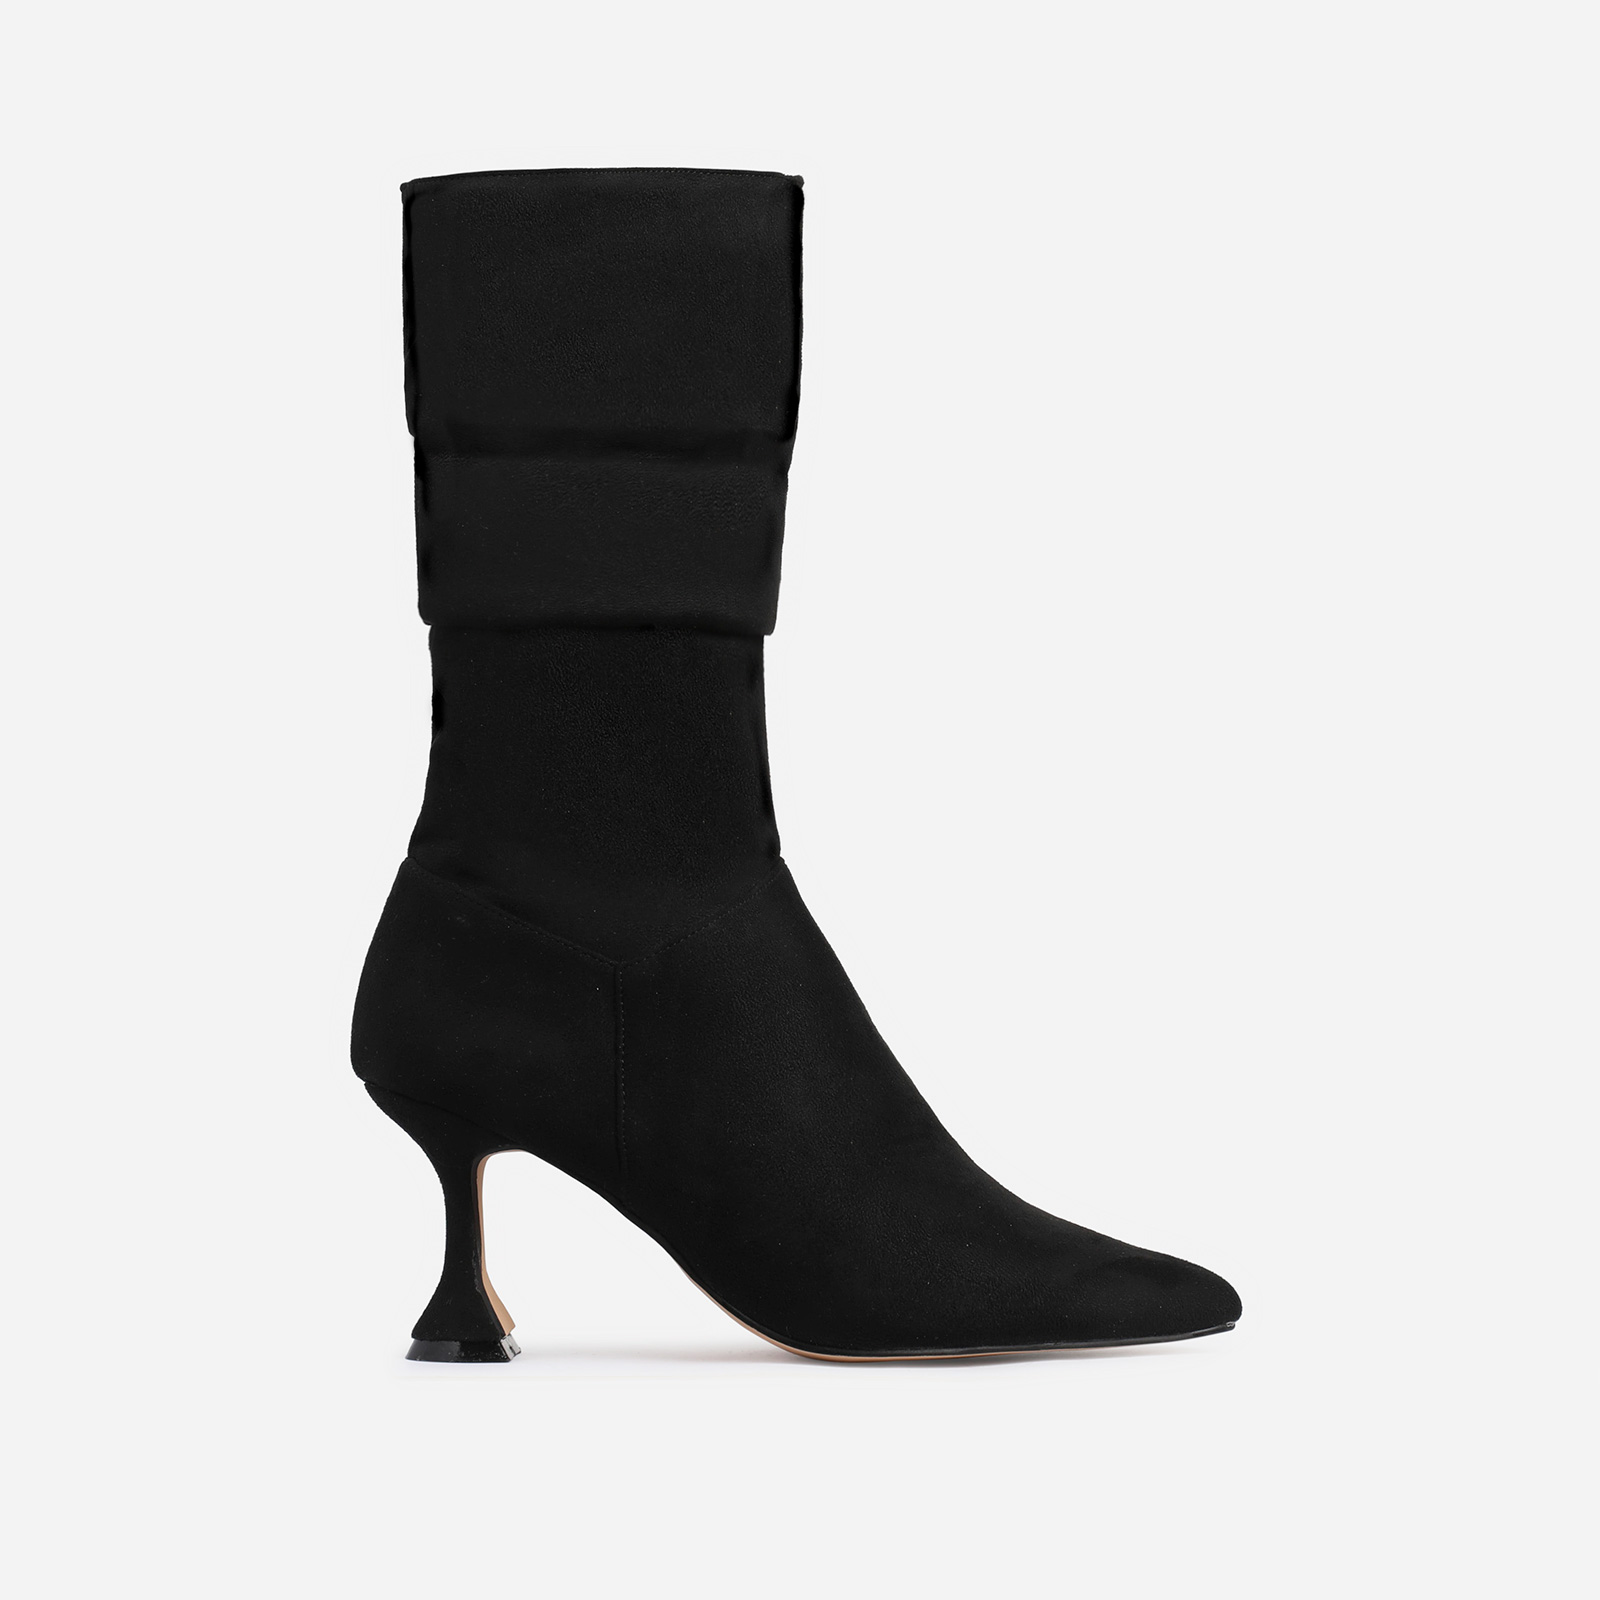 Collab Pyramid Heel Slouched Ankle Boot In Black Faux Suede